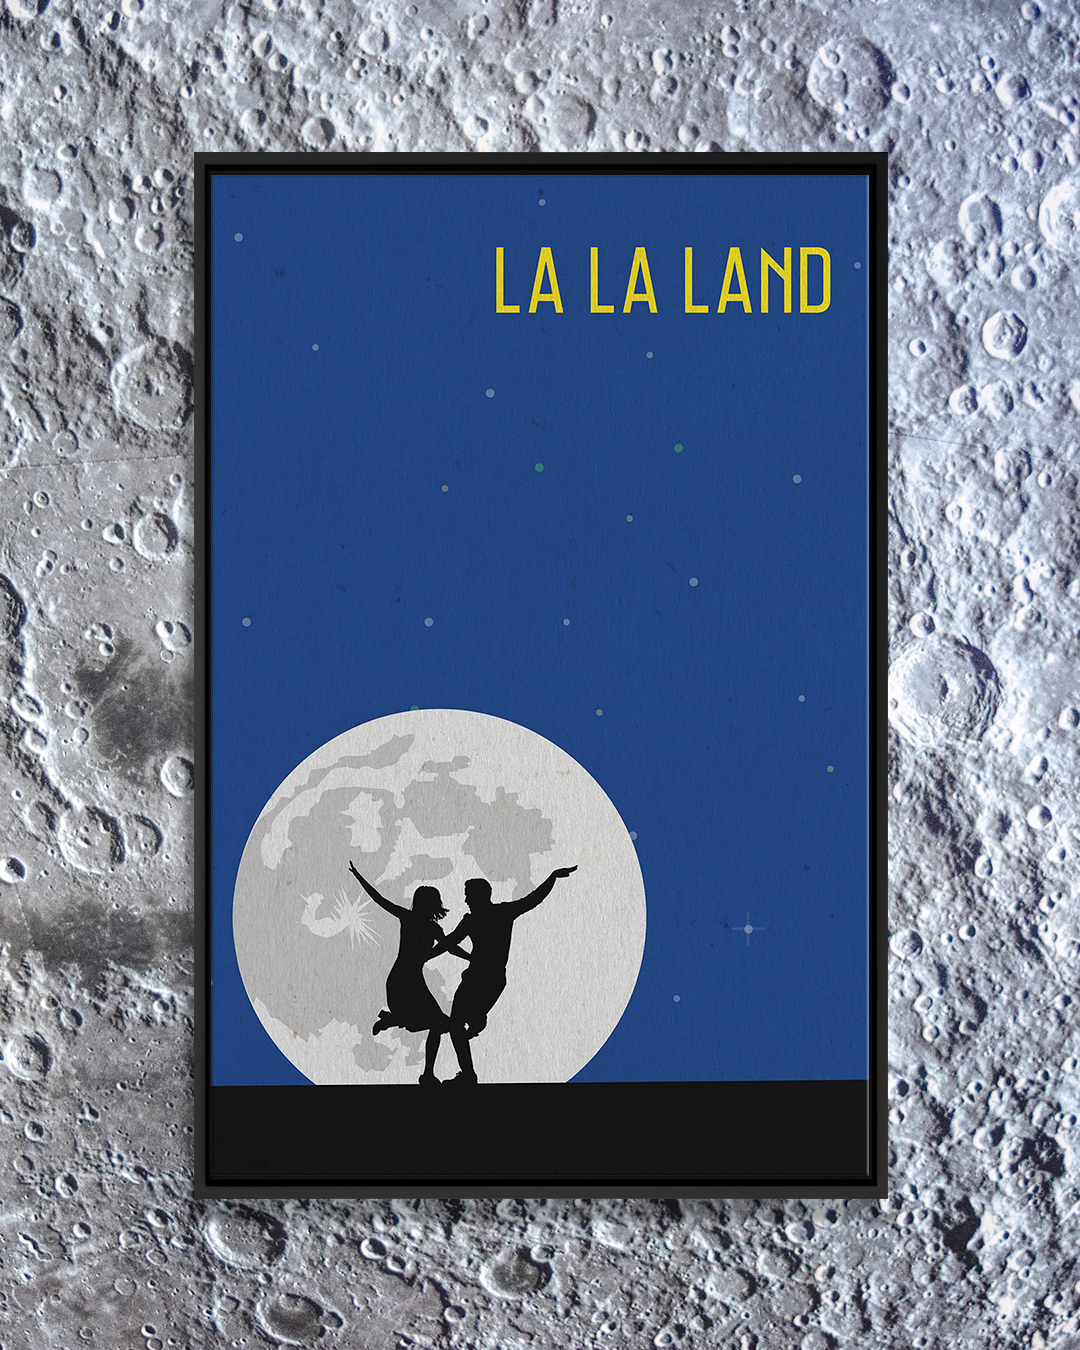 Wall art of La La Land movie poster against moon background by iCanvas artist Popate